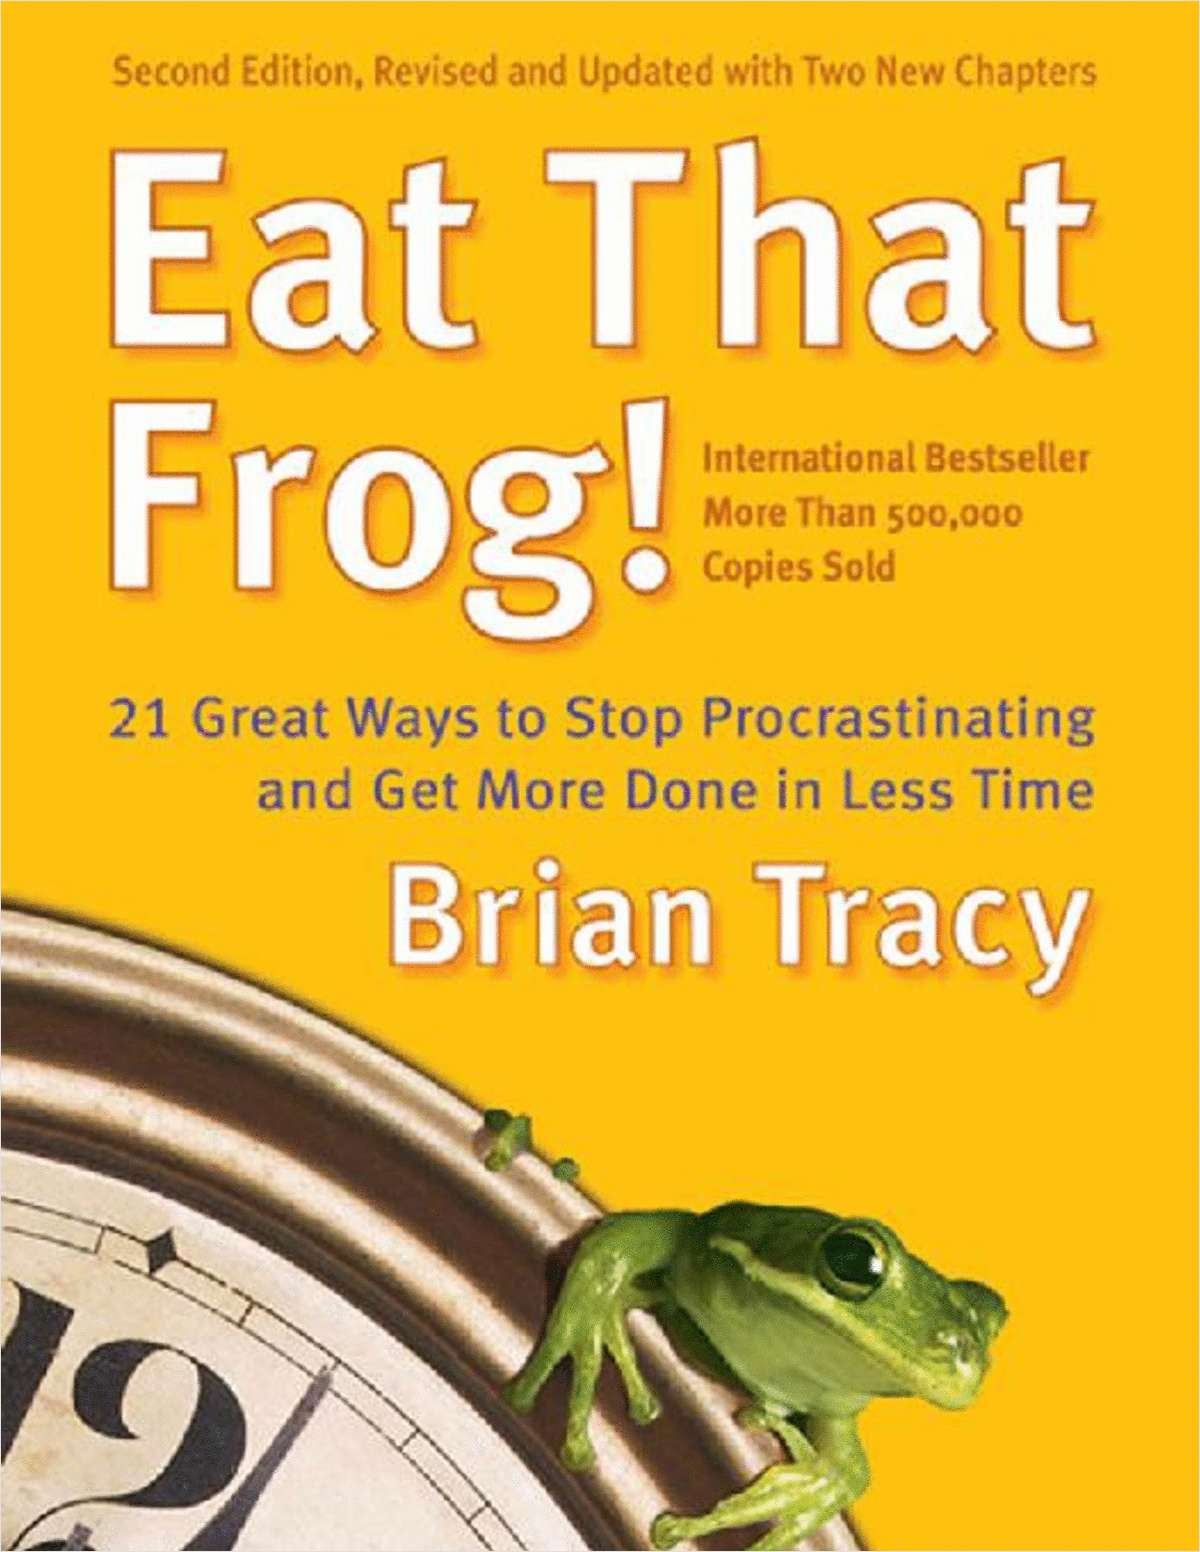 Eat That Frog! 21 Great Ways to Stop Procrastinating and Get More Done in Less Time (A 43 Page Excerpt)